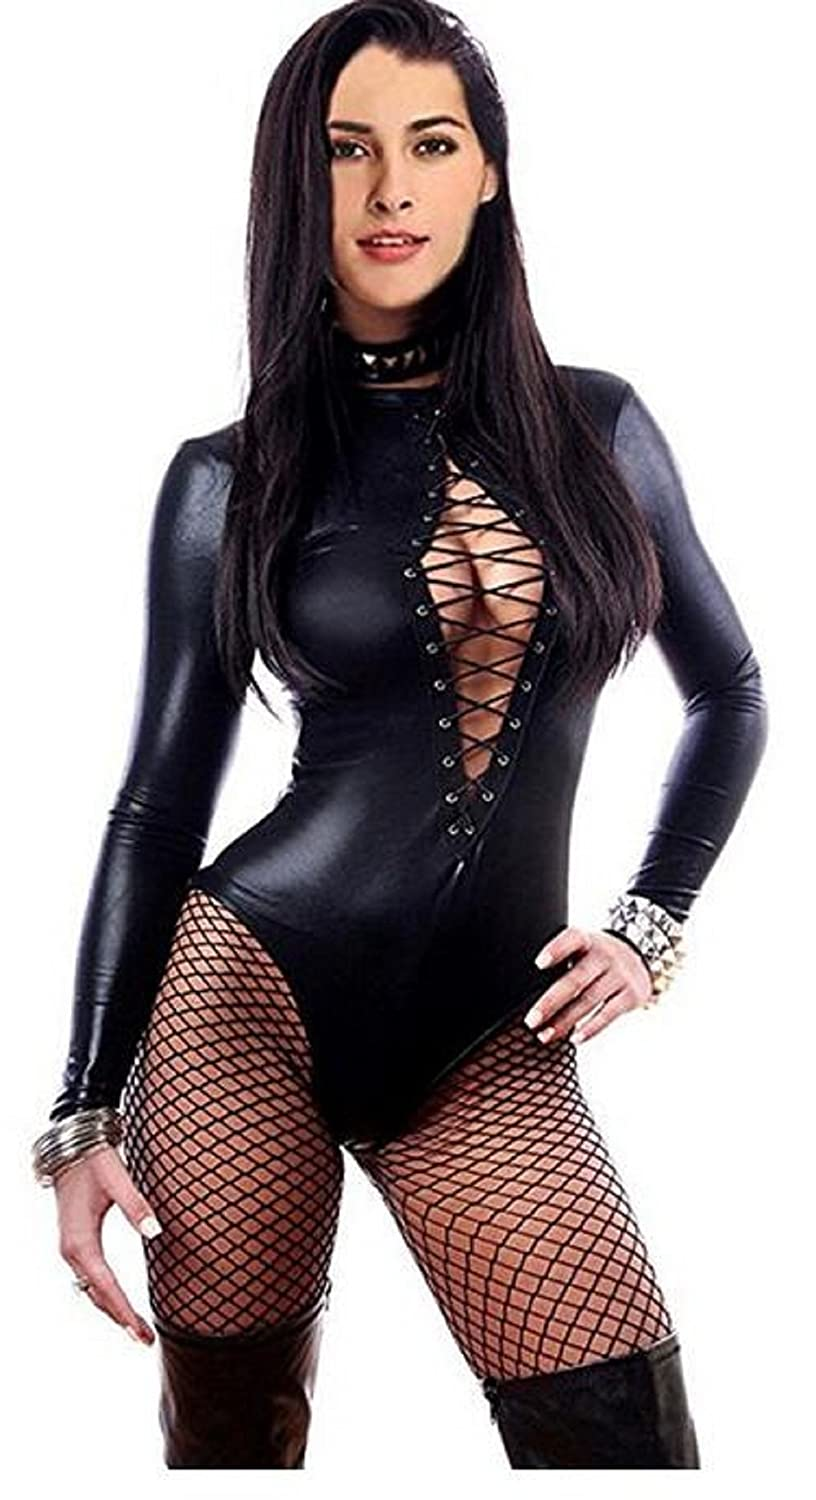 Amazon.com  Lorembelle Queen Women s Sexy Lace-up Front Bodysuit Leather  Teddy Lingerie Long Sleeve  Clothing aadd5ed8d